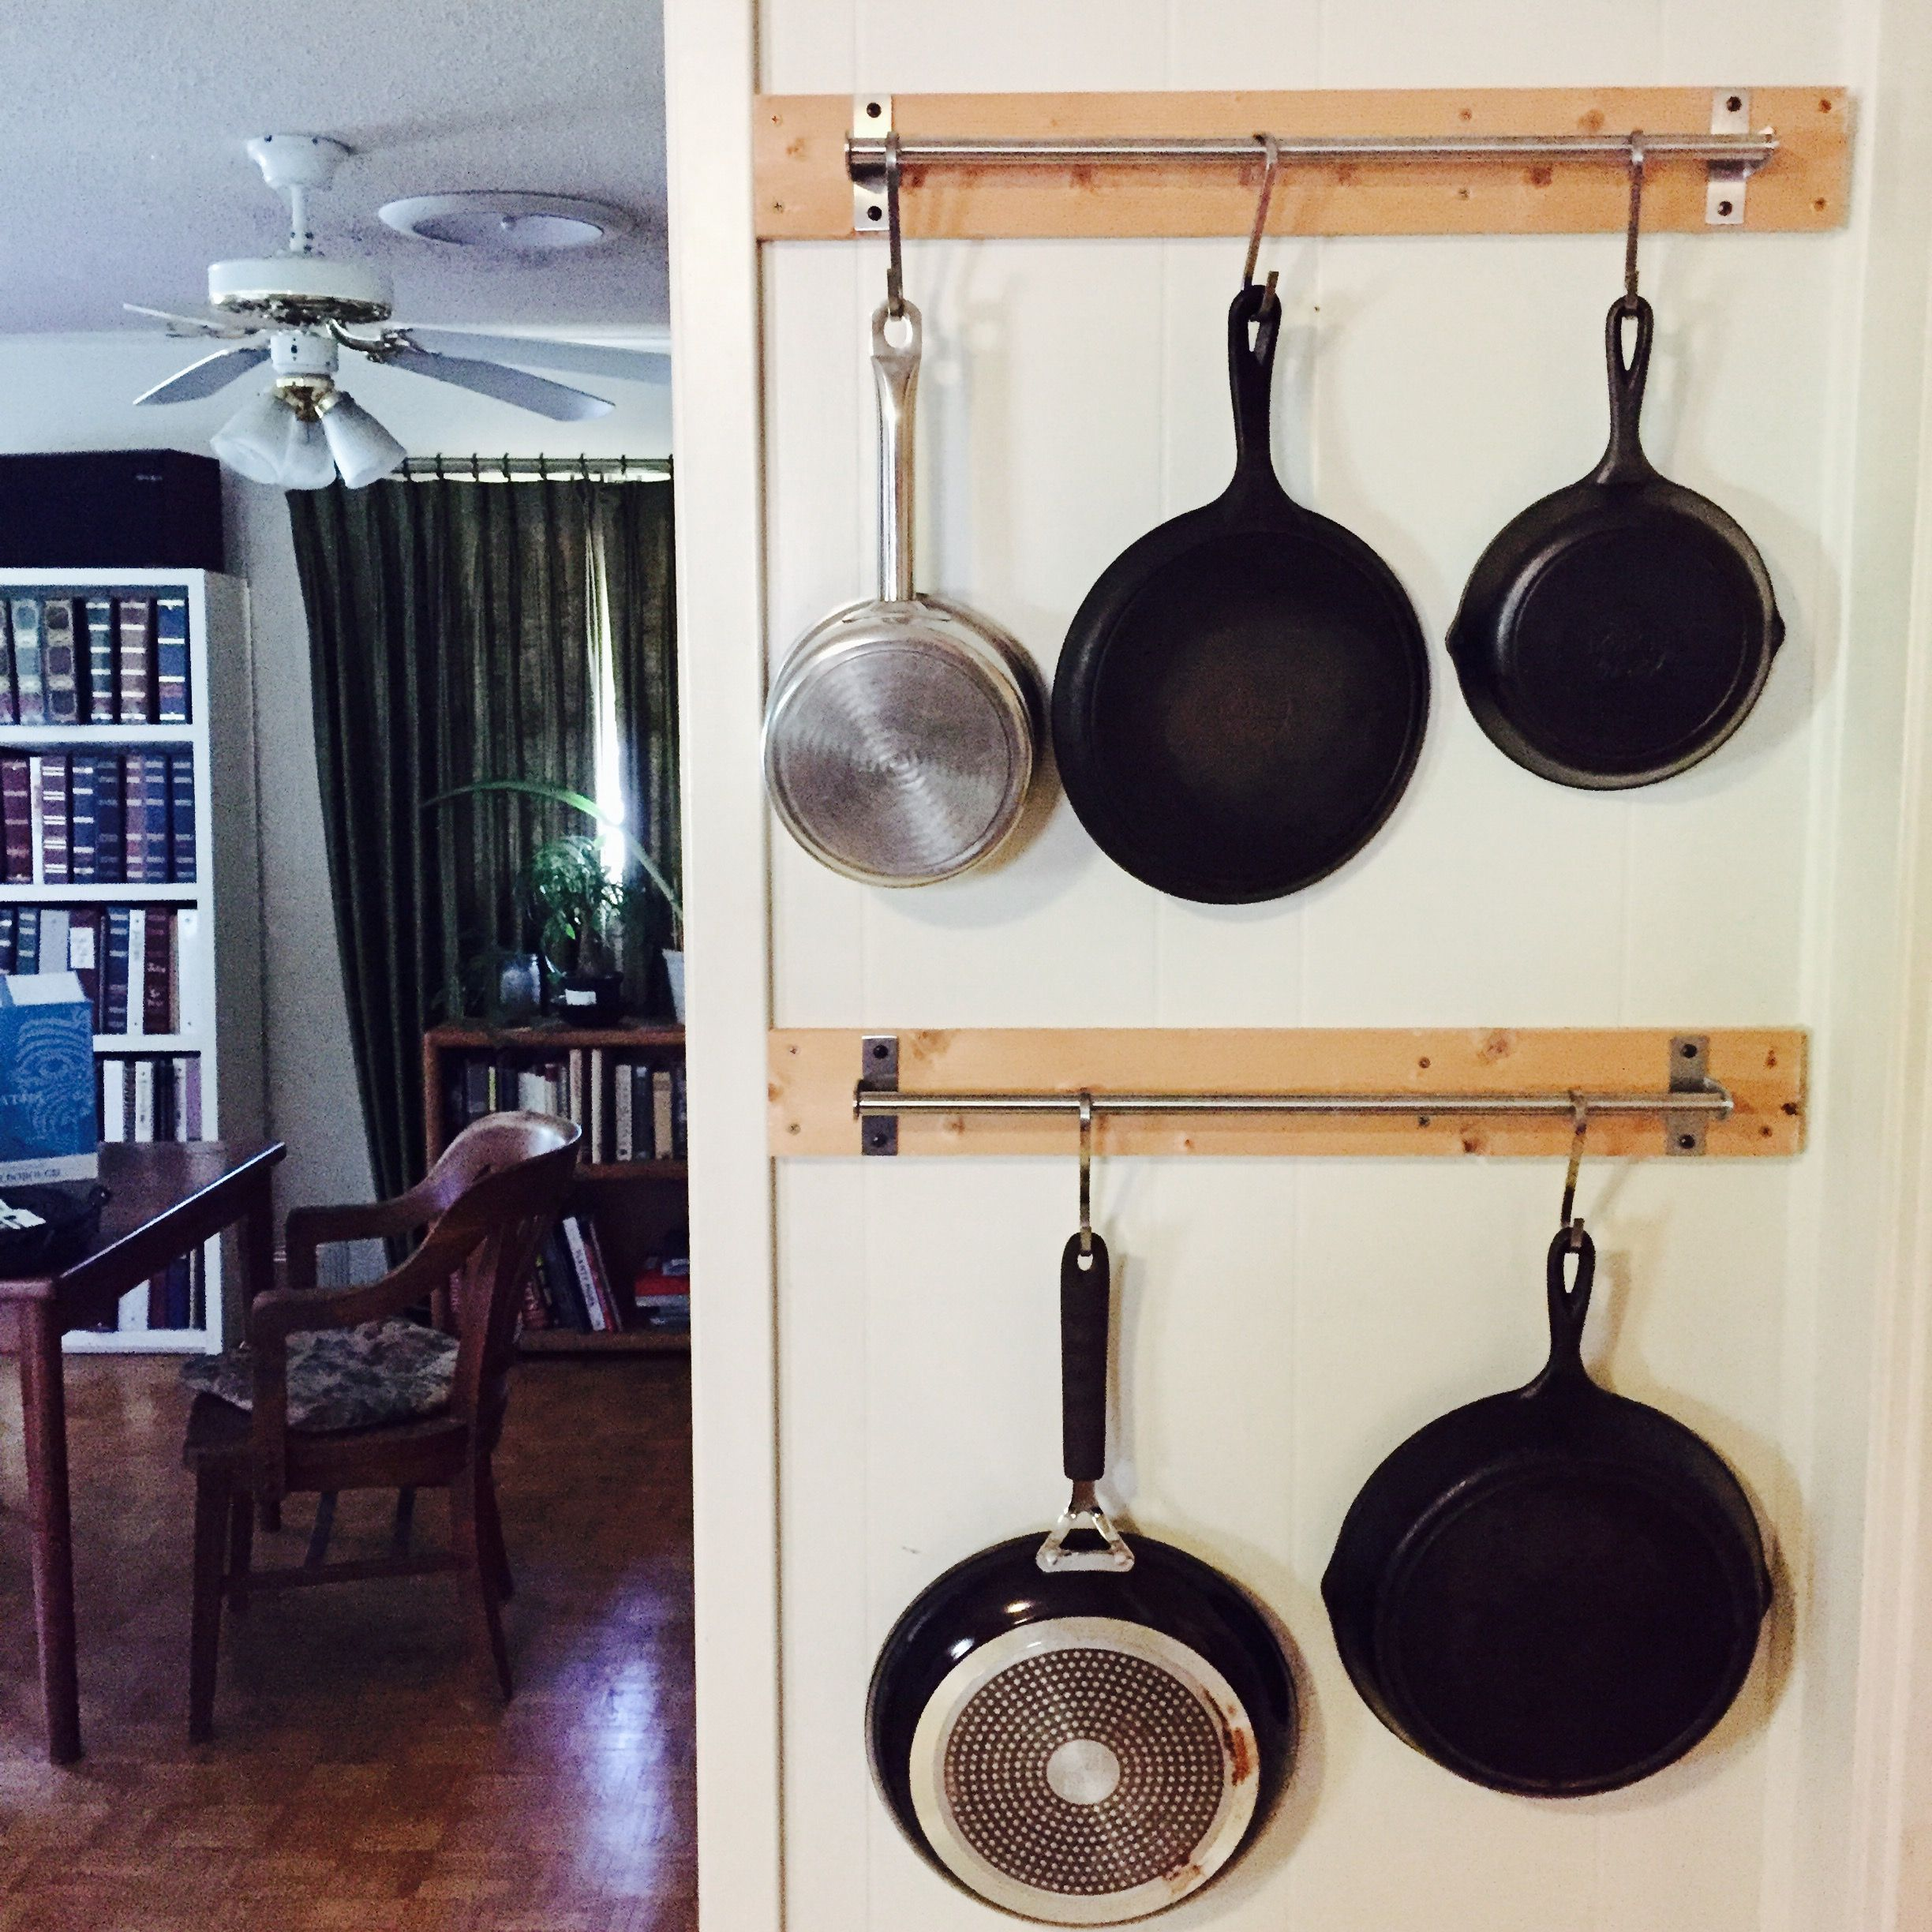 Diy Wall Hanging Pans 1x4s And Ikea Hanging Rods Cast Iron Pans